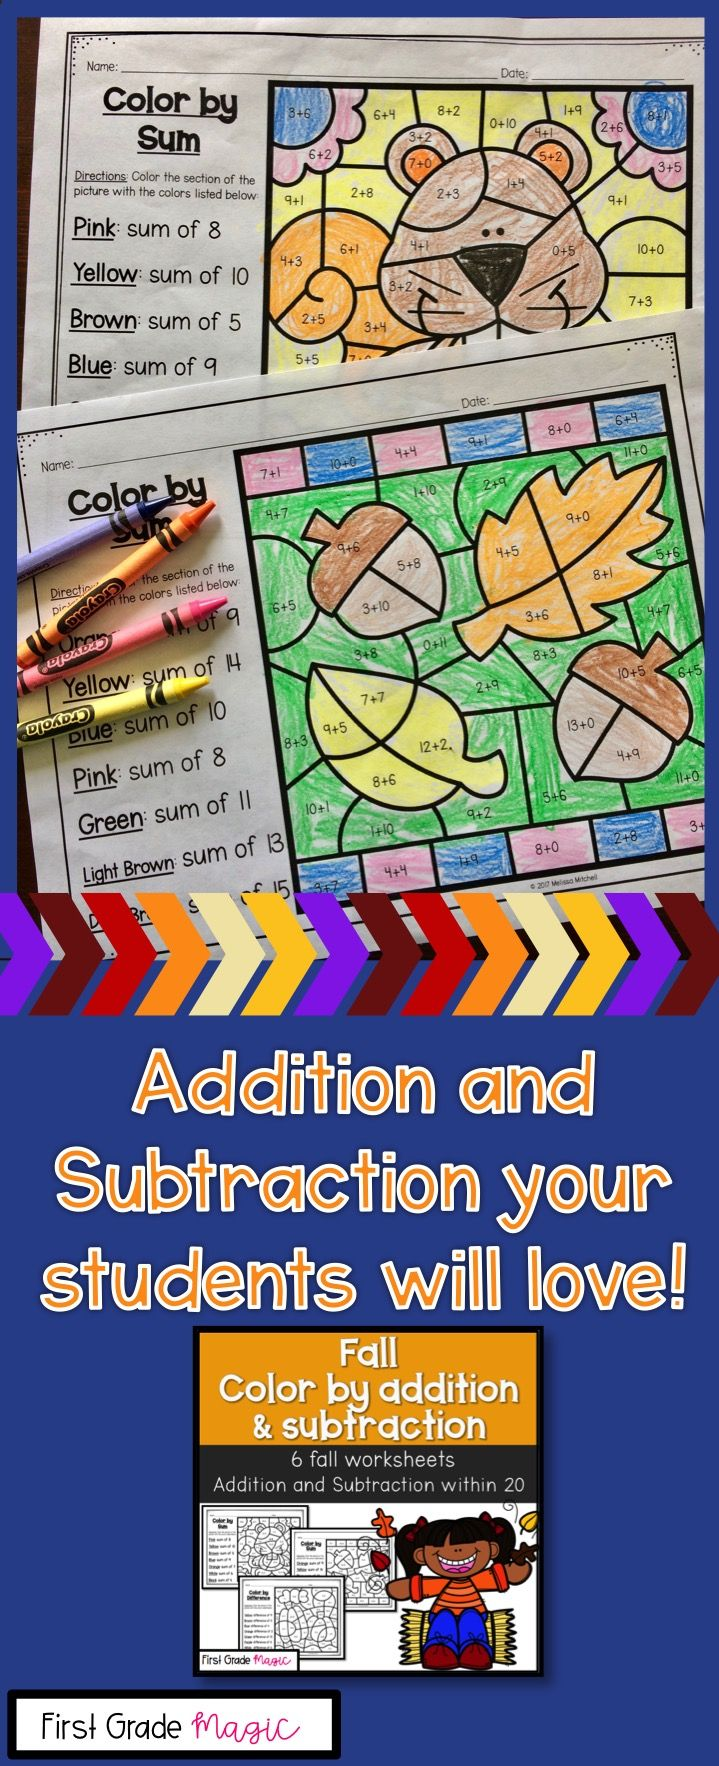 These math worksheets are perfect for addition and subtraction practice. Your students will love getting to color these cute fall images!